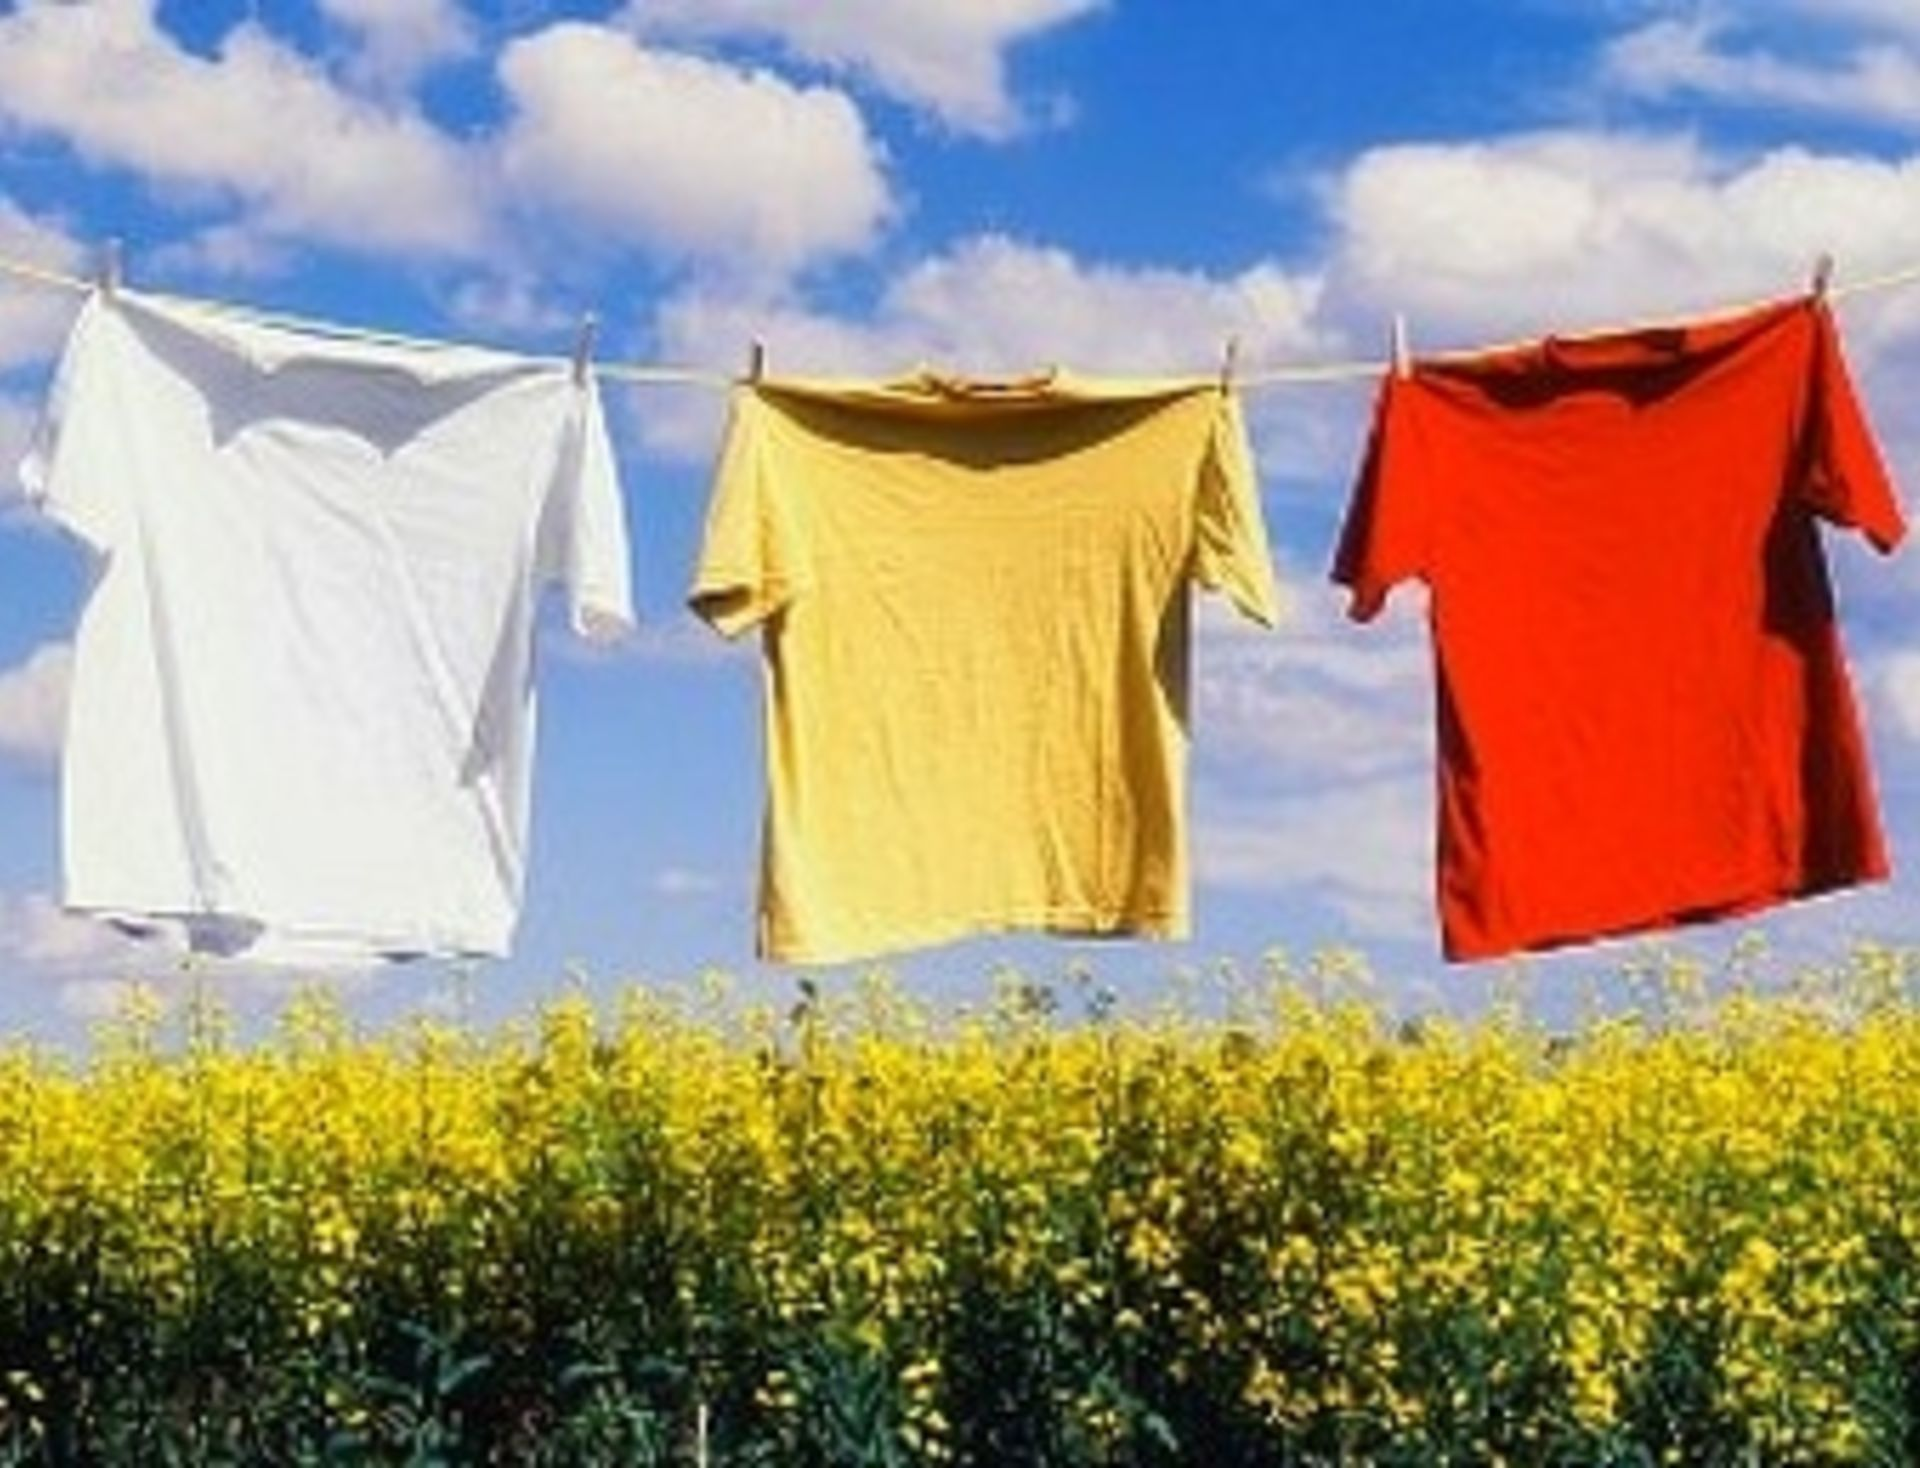 Clean out your Dryer